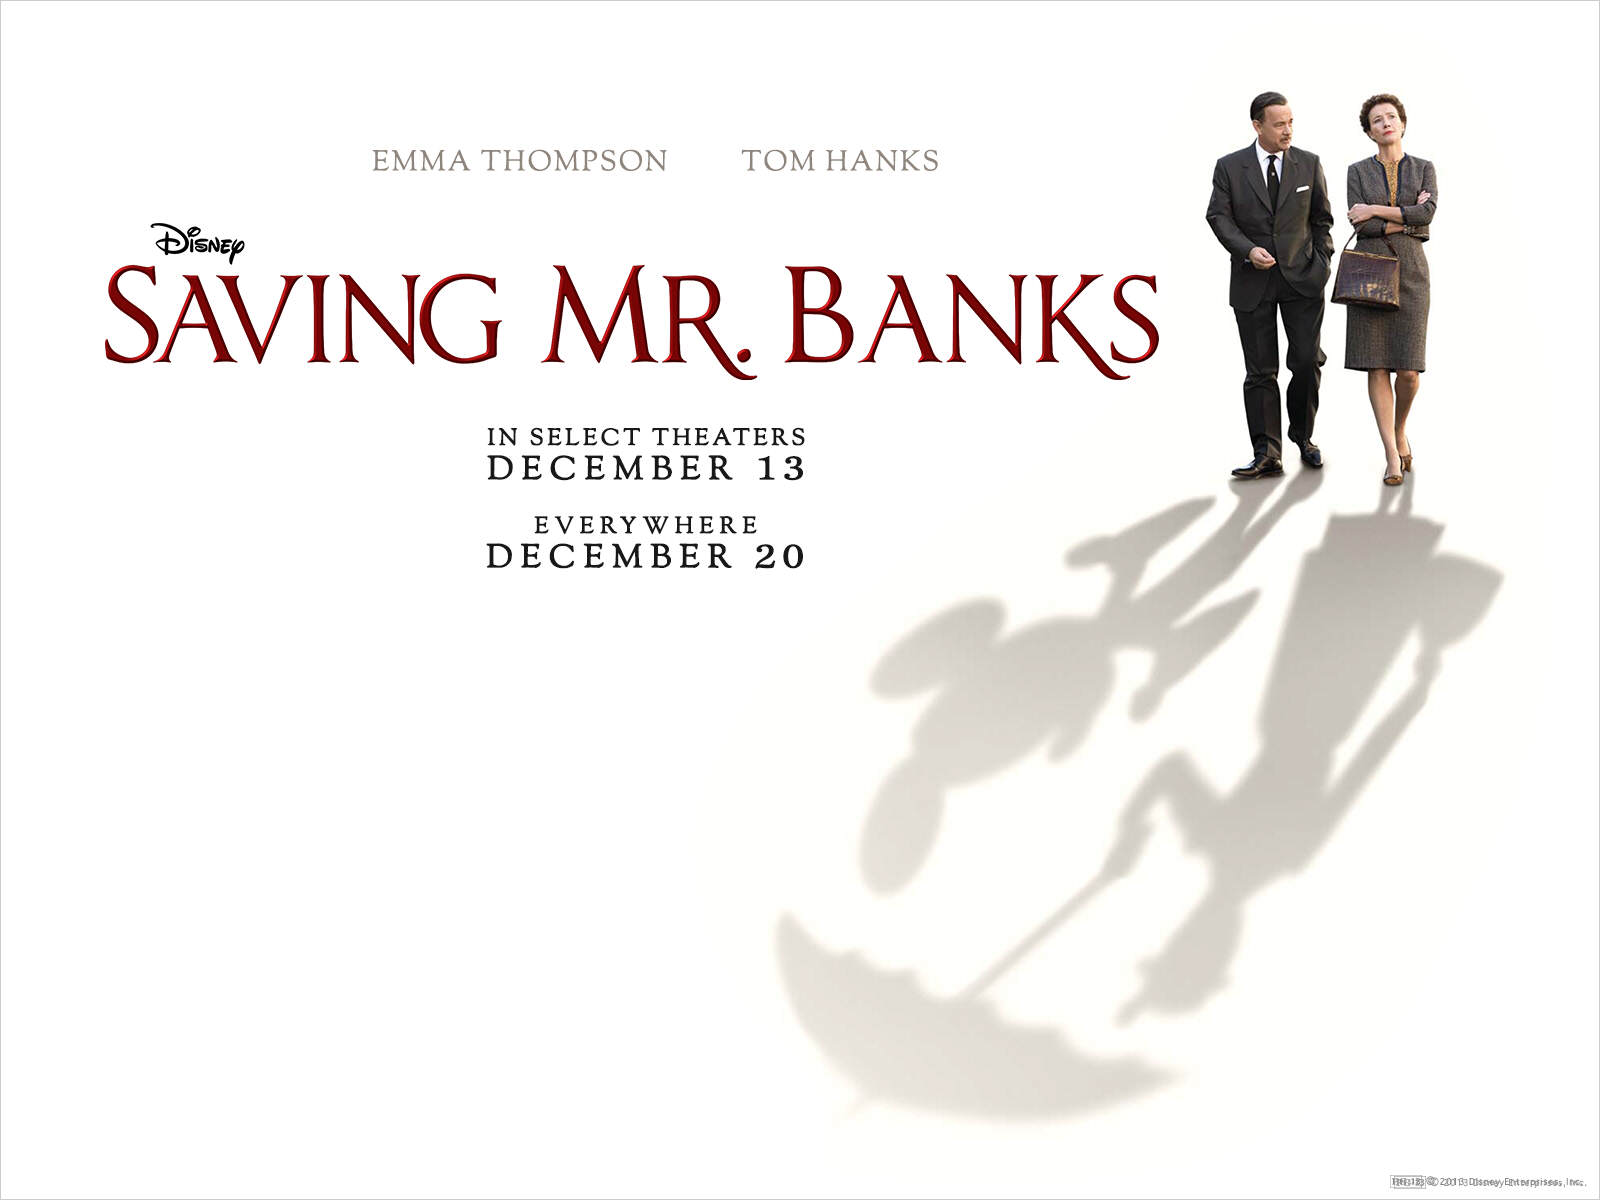 saving mr banks, mary poppins, saving mr banks review, tom hanks, emma thompson, holiday movies, midlife, midlife women, featured